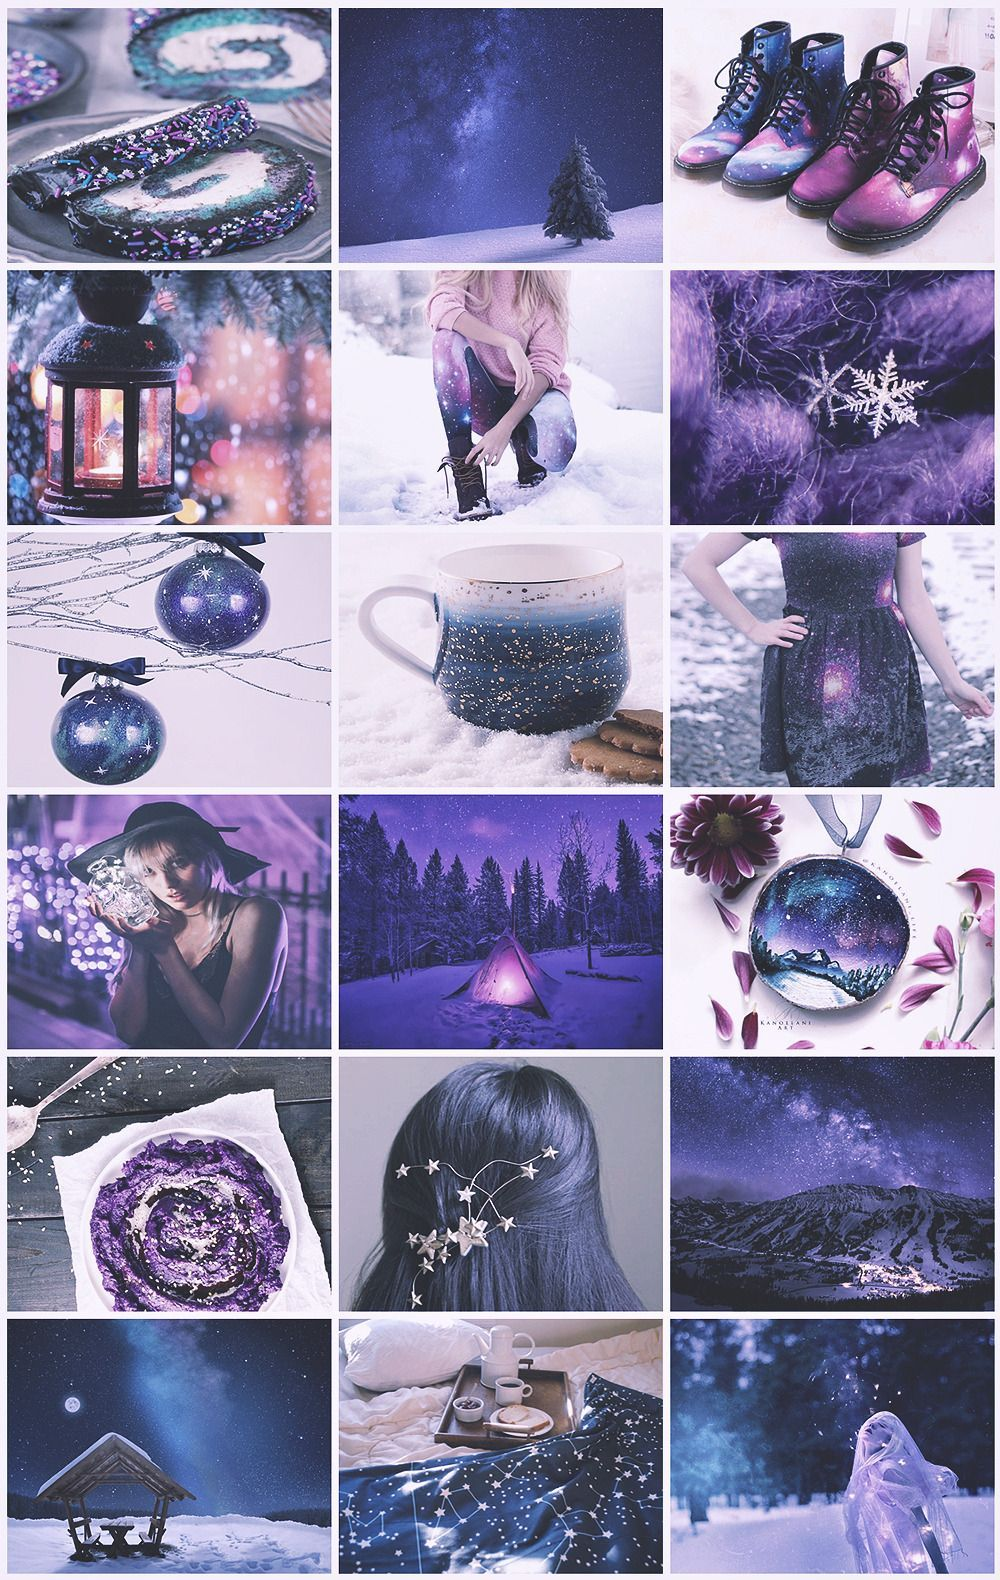 Witch Aesthetic Wallpapers On Wallpaperdog